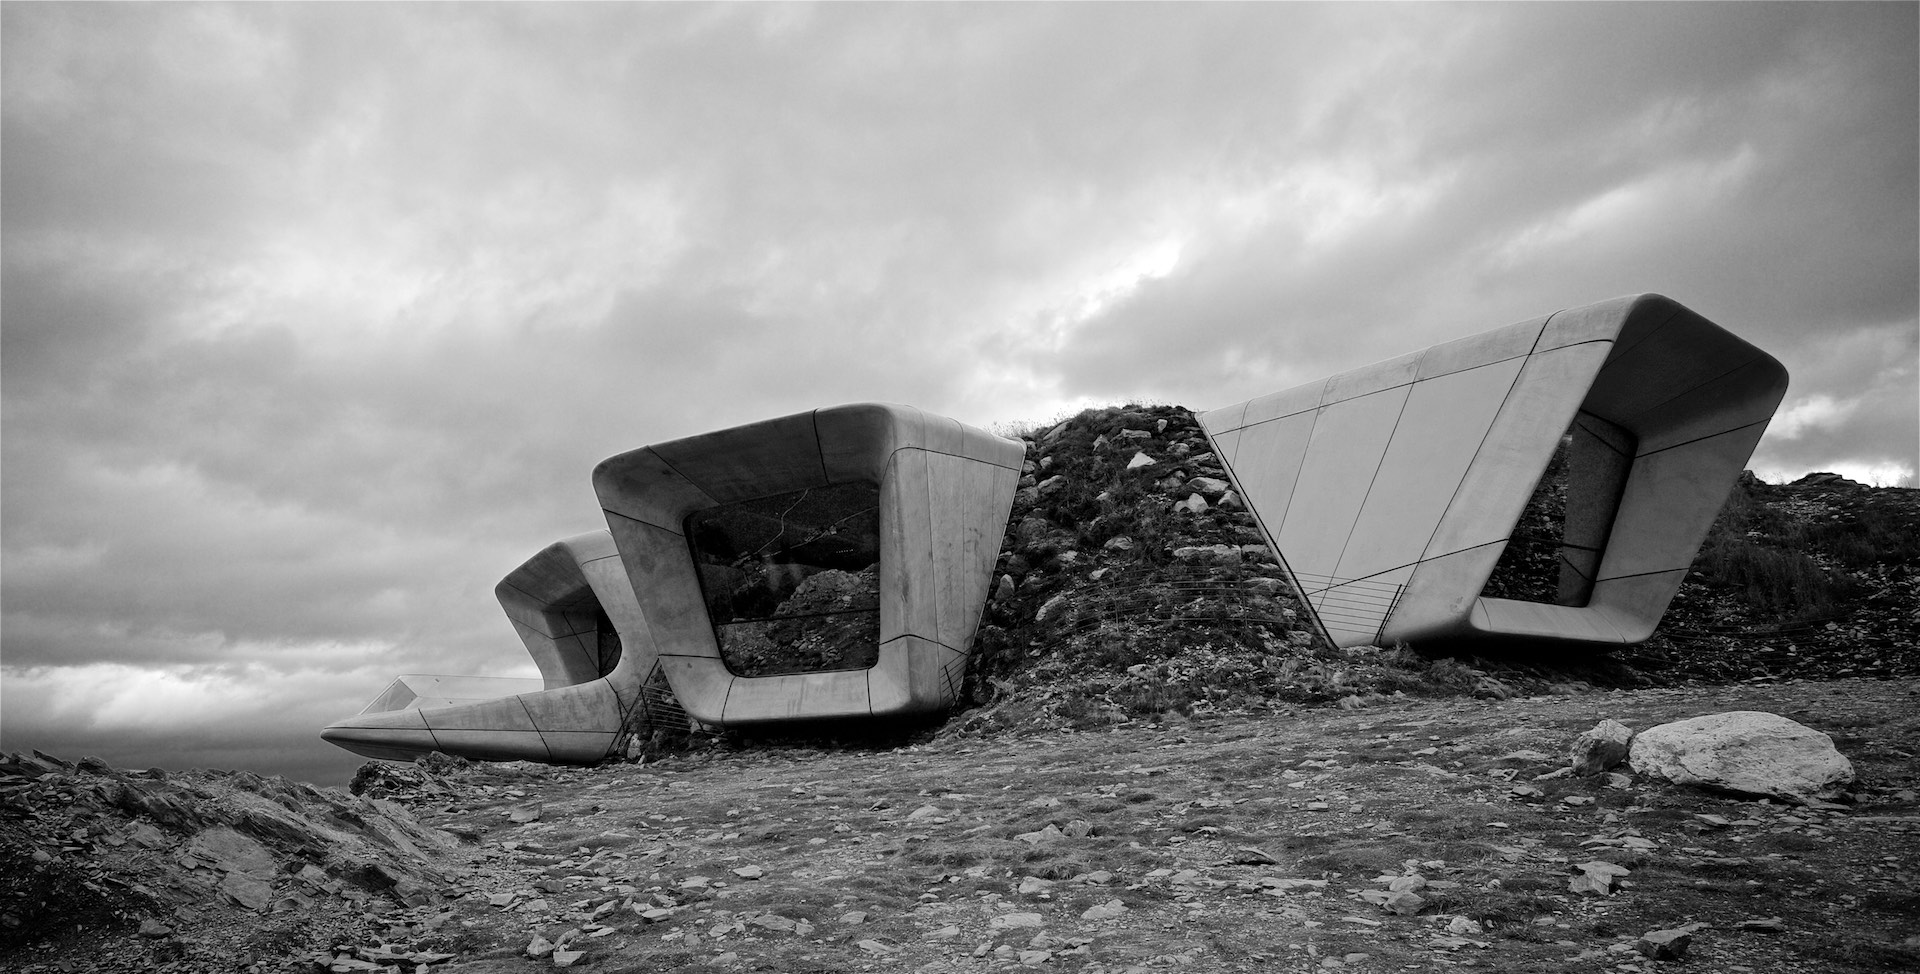 Messner Mountain Museum, Kronplatz. Architect: Zaha Hadid